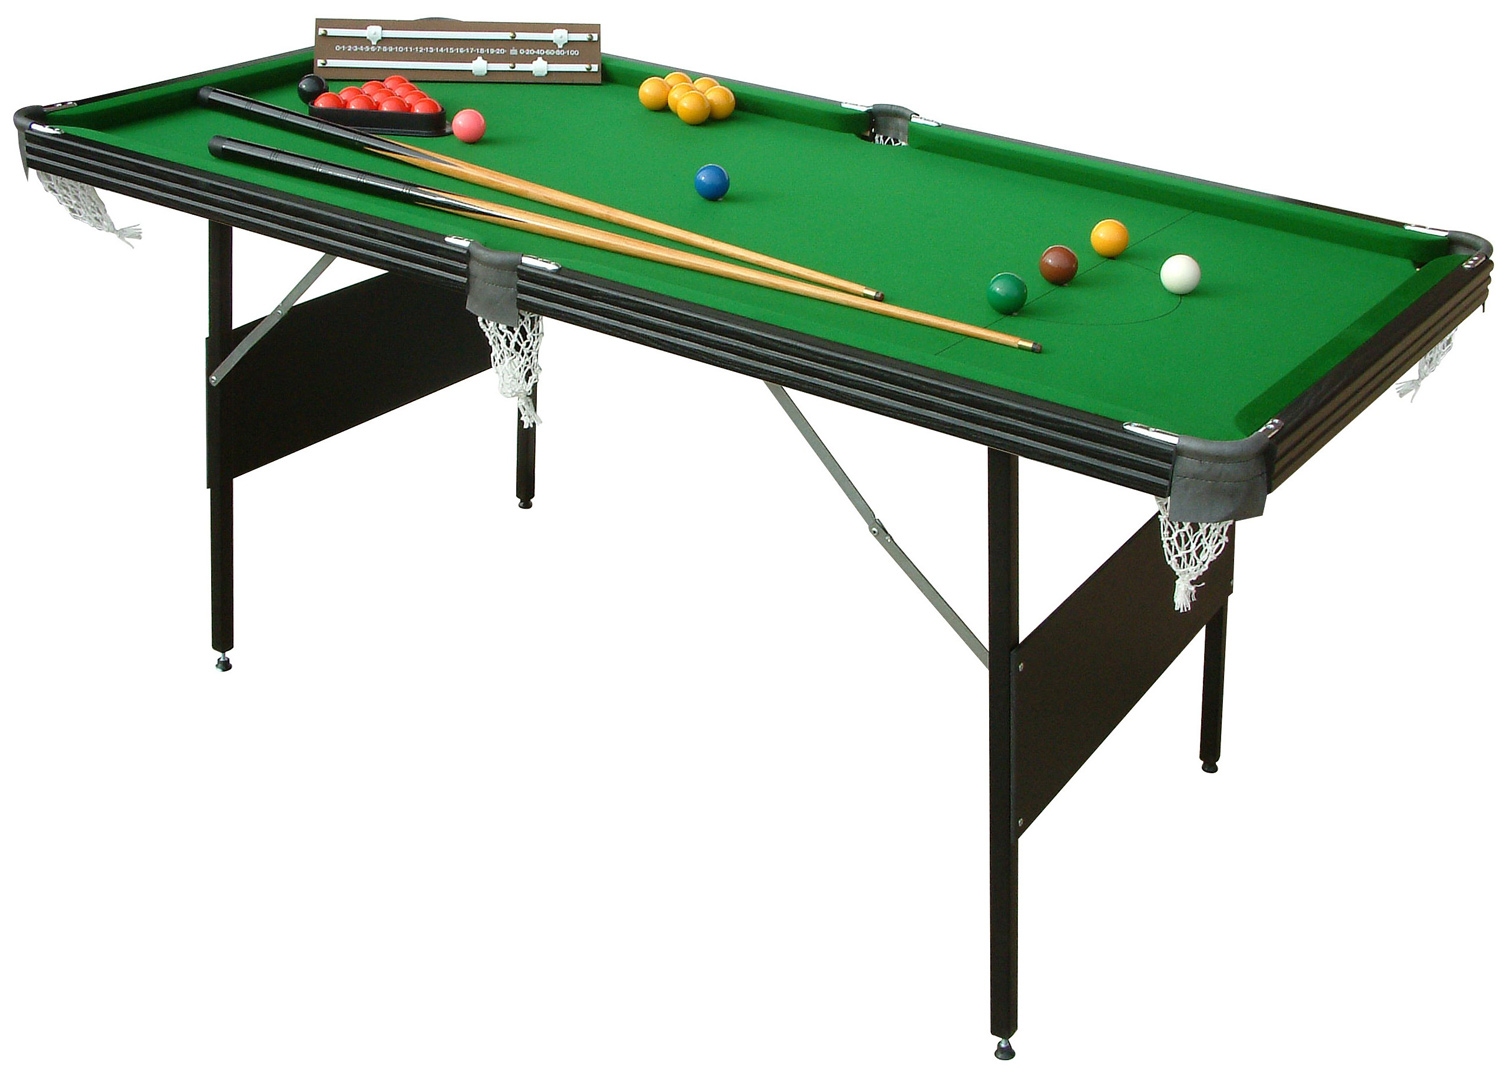 Crucible Foot In Folding Snooker Pool Table Liberty Games - American pool table company